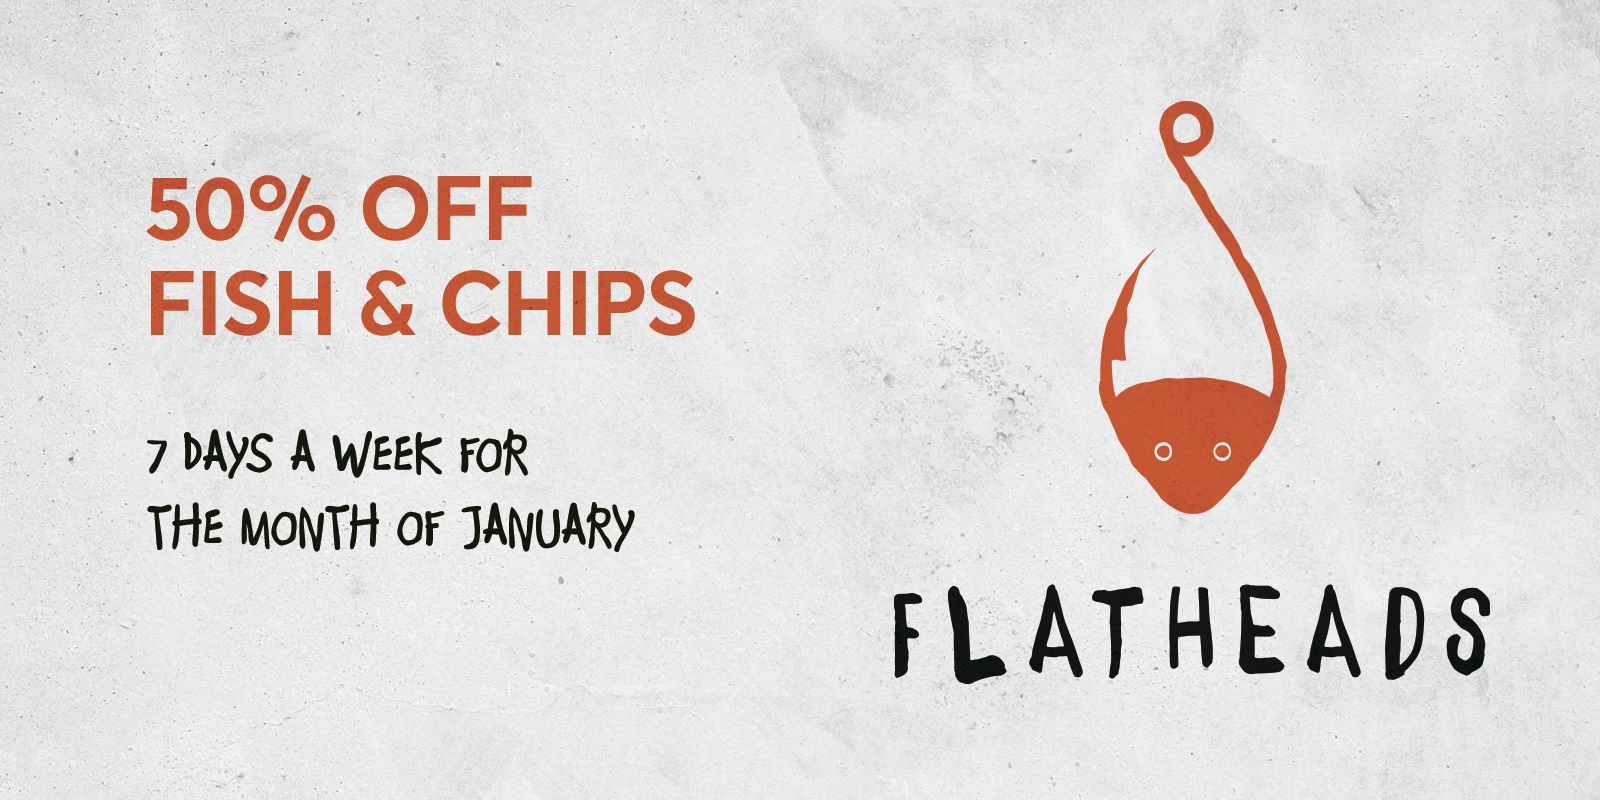 50% OFF FISH & CHIPS Rectangle